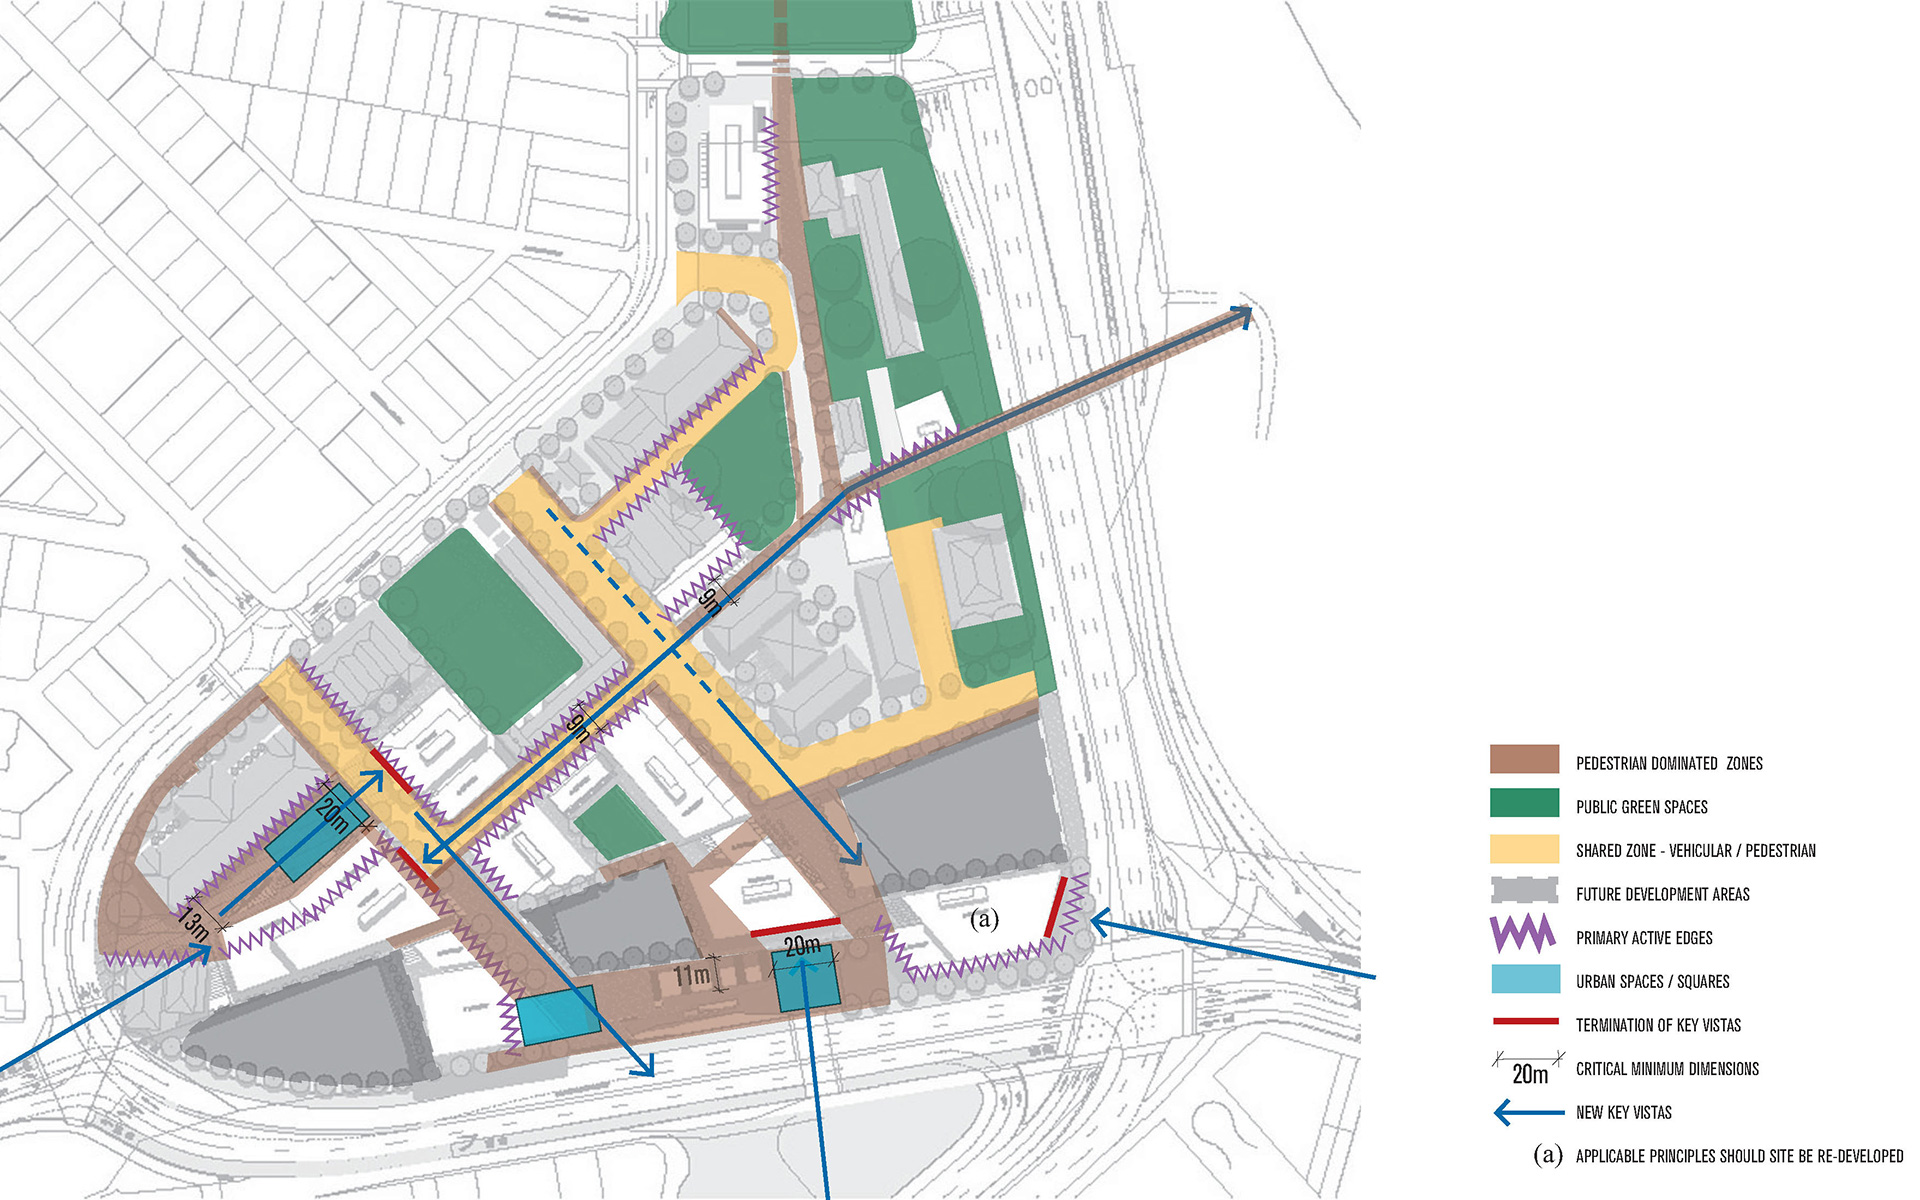 City West Master Plan 2